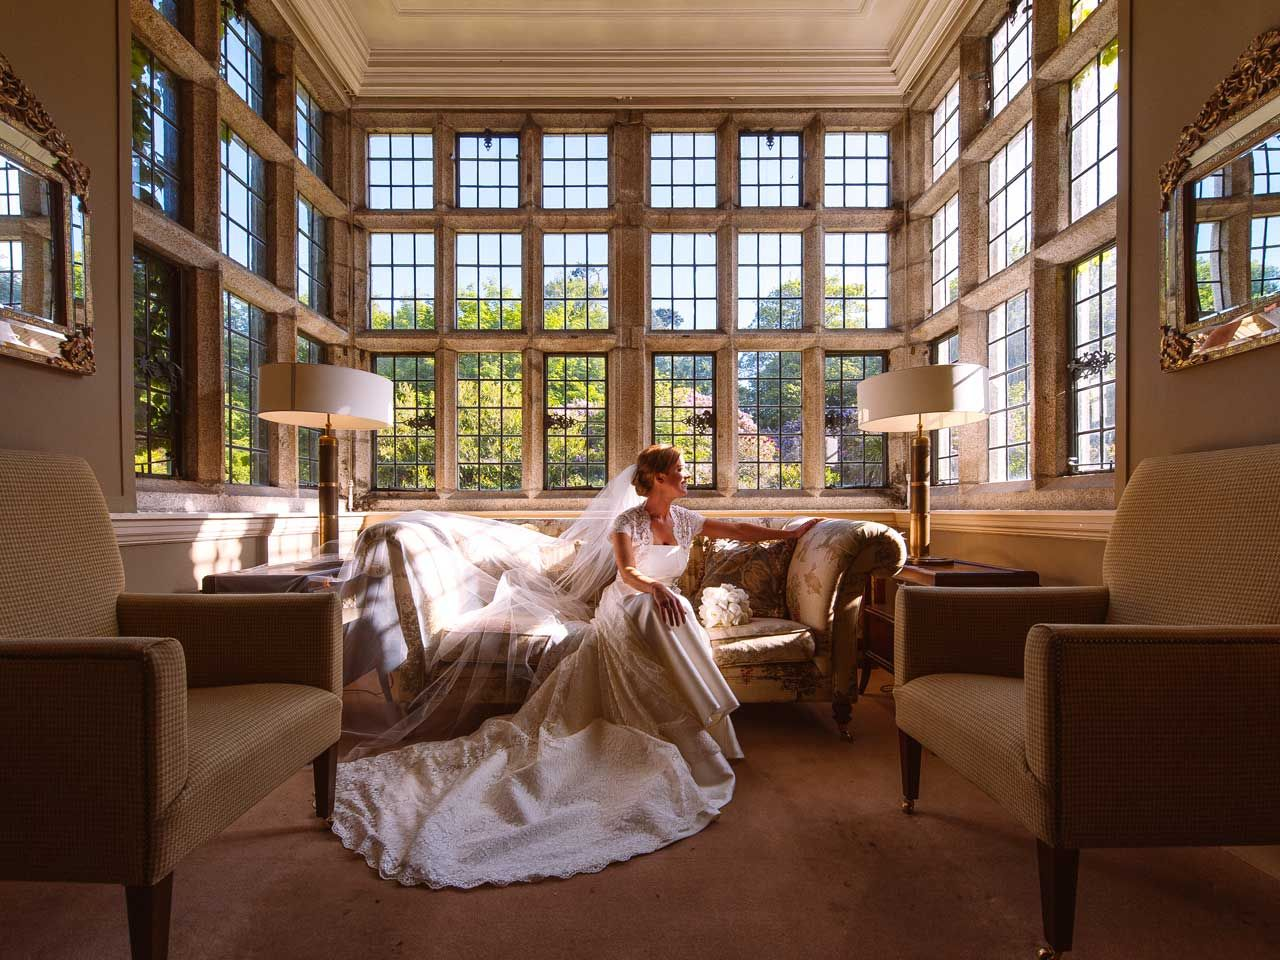 View A Selection Of Stunning Wedding Photos From Waterford Castle Hotel Golf Resort Superb Choice Irish Packages Available